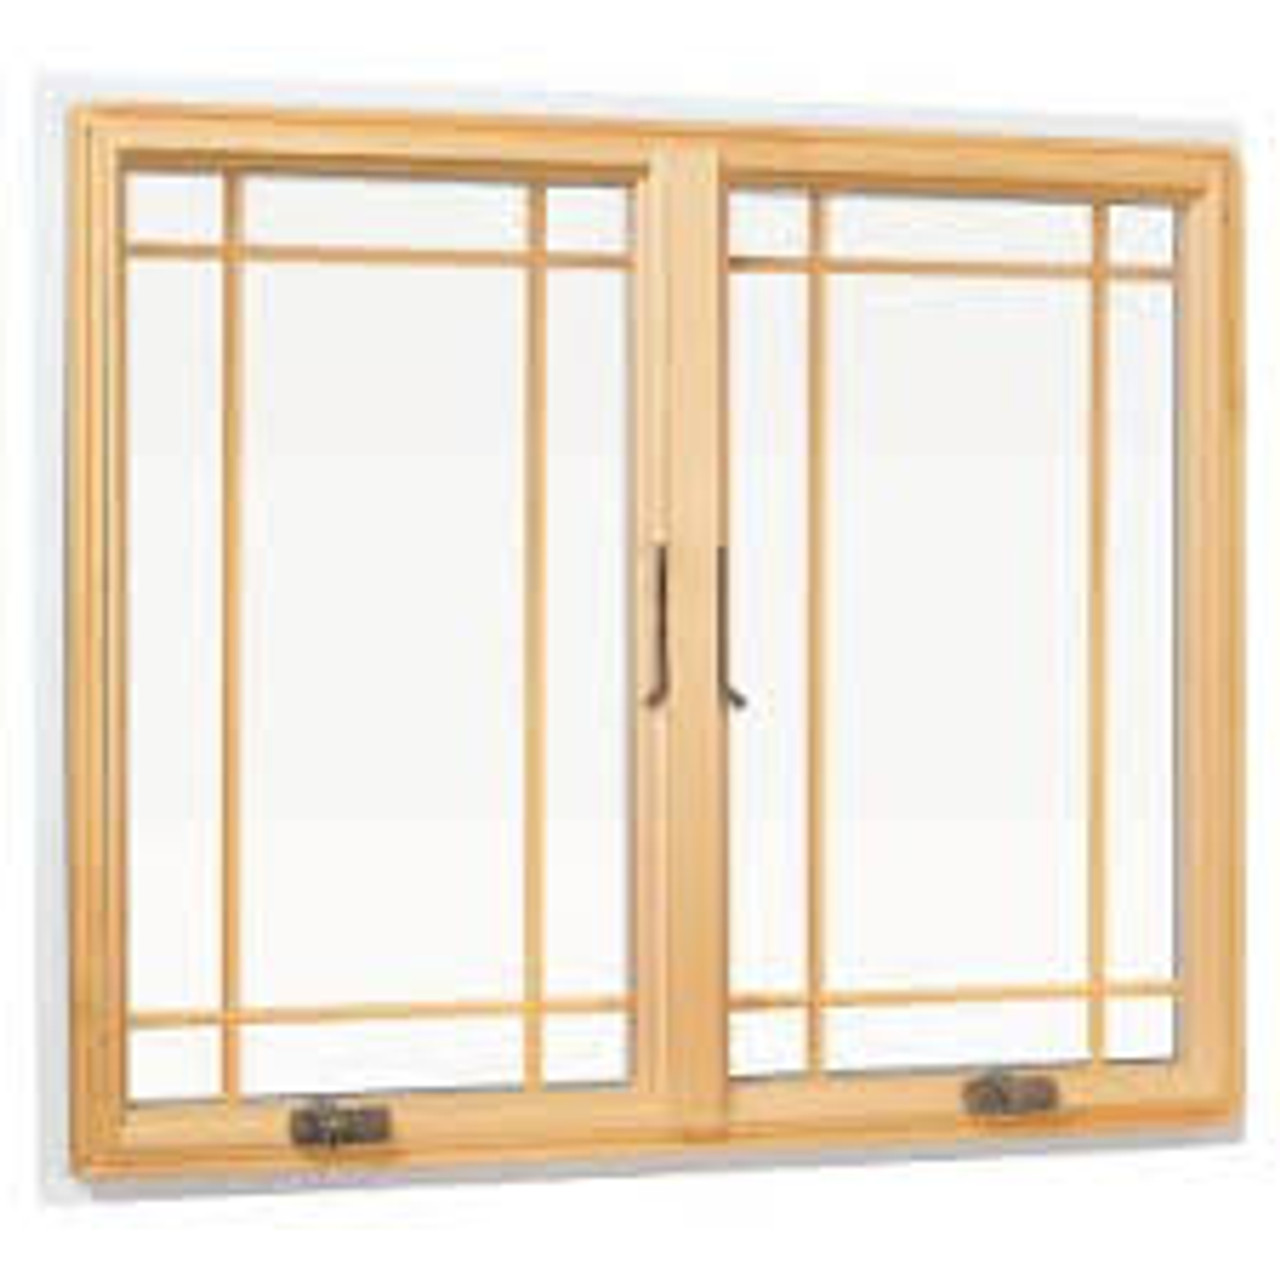 Lincoln casement Prairie Style Wood grille (for windows 1986 to September 2005)